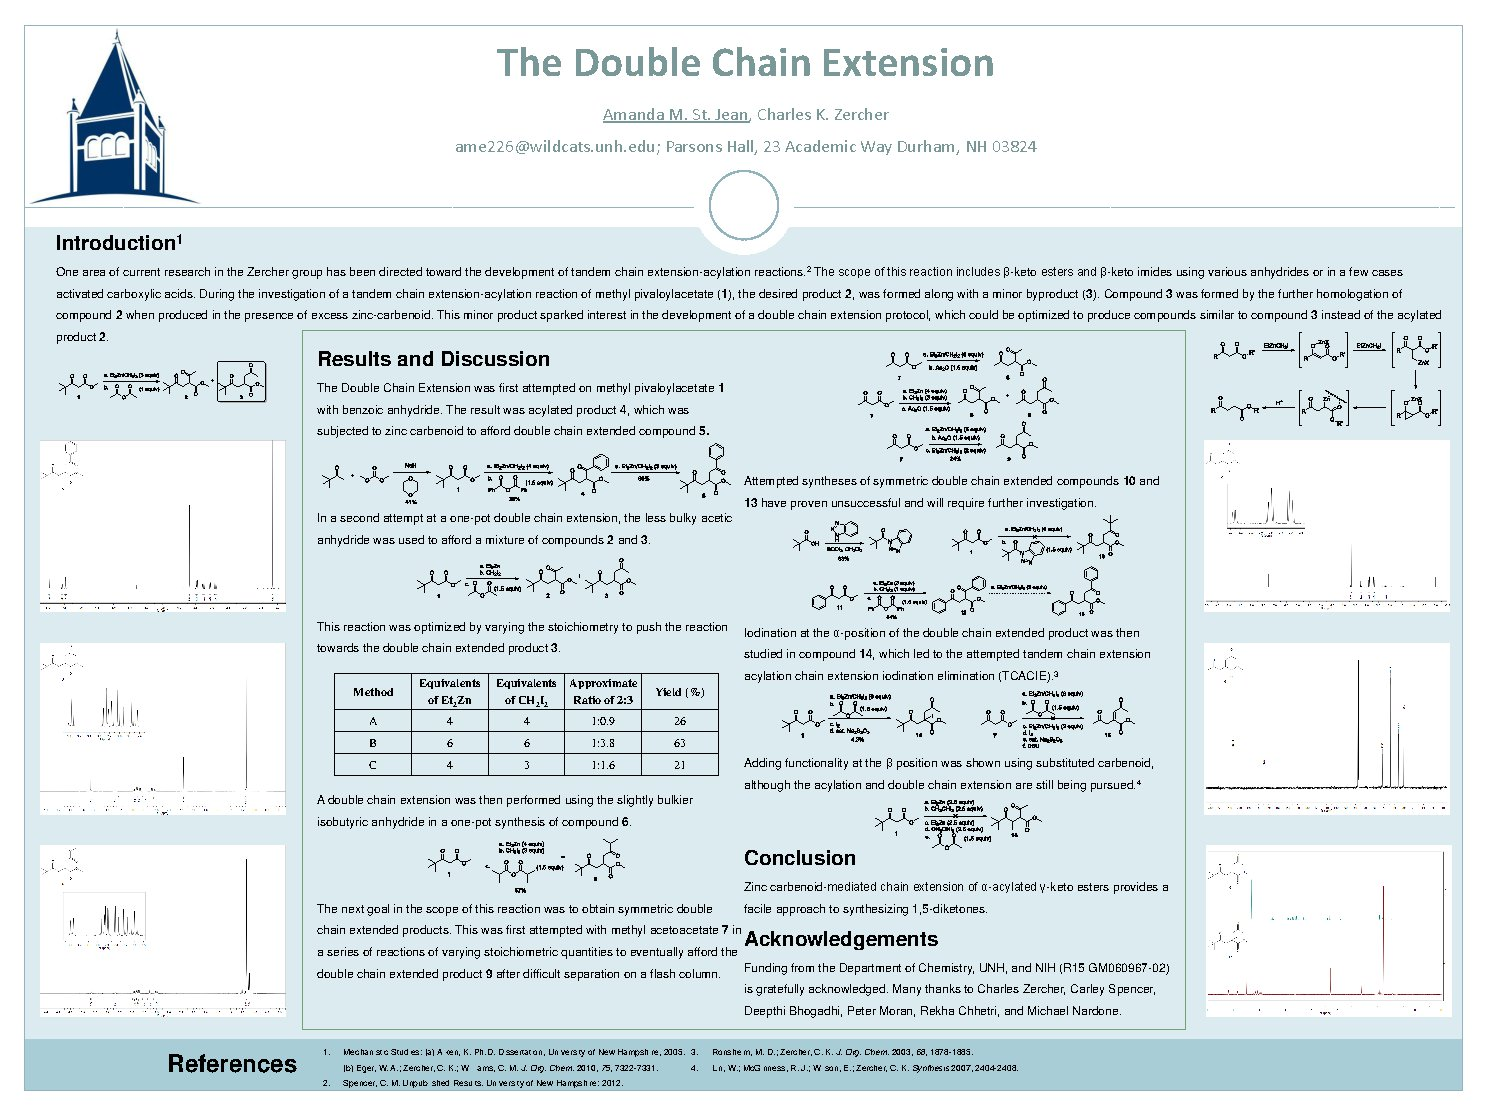 The Double Chain Extension by ame226